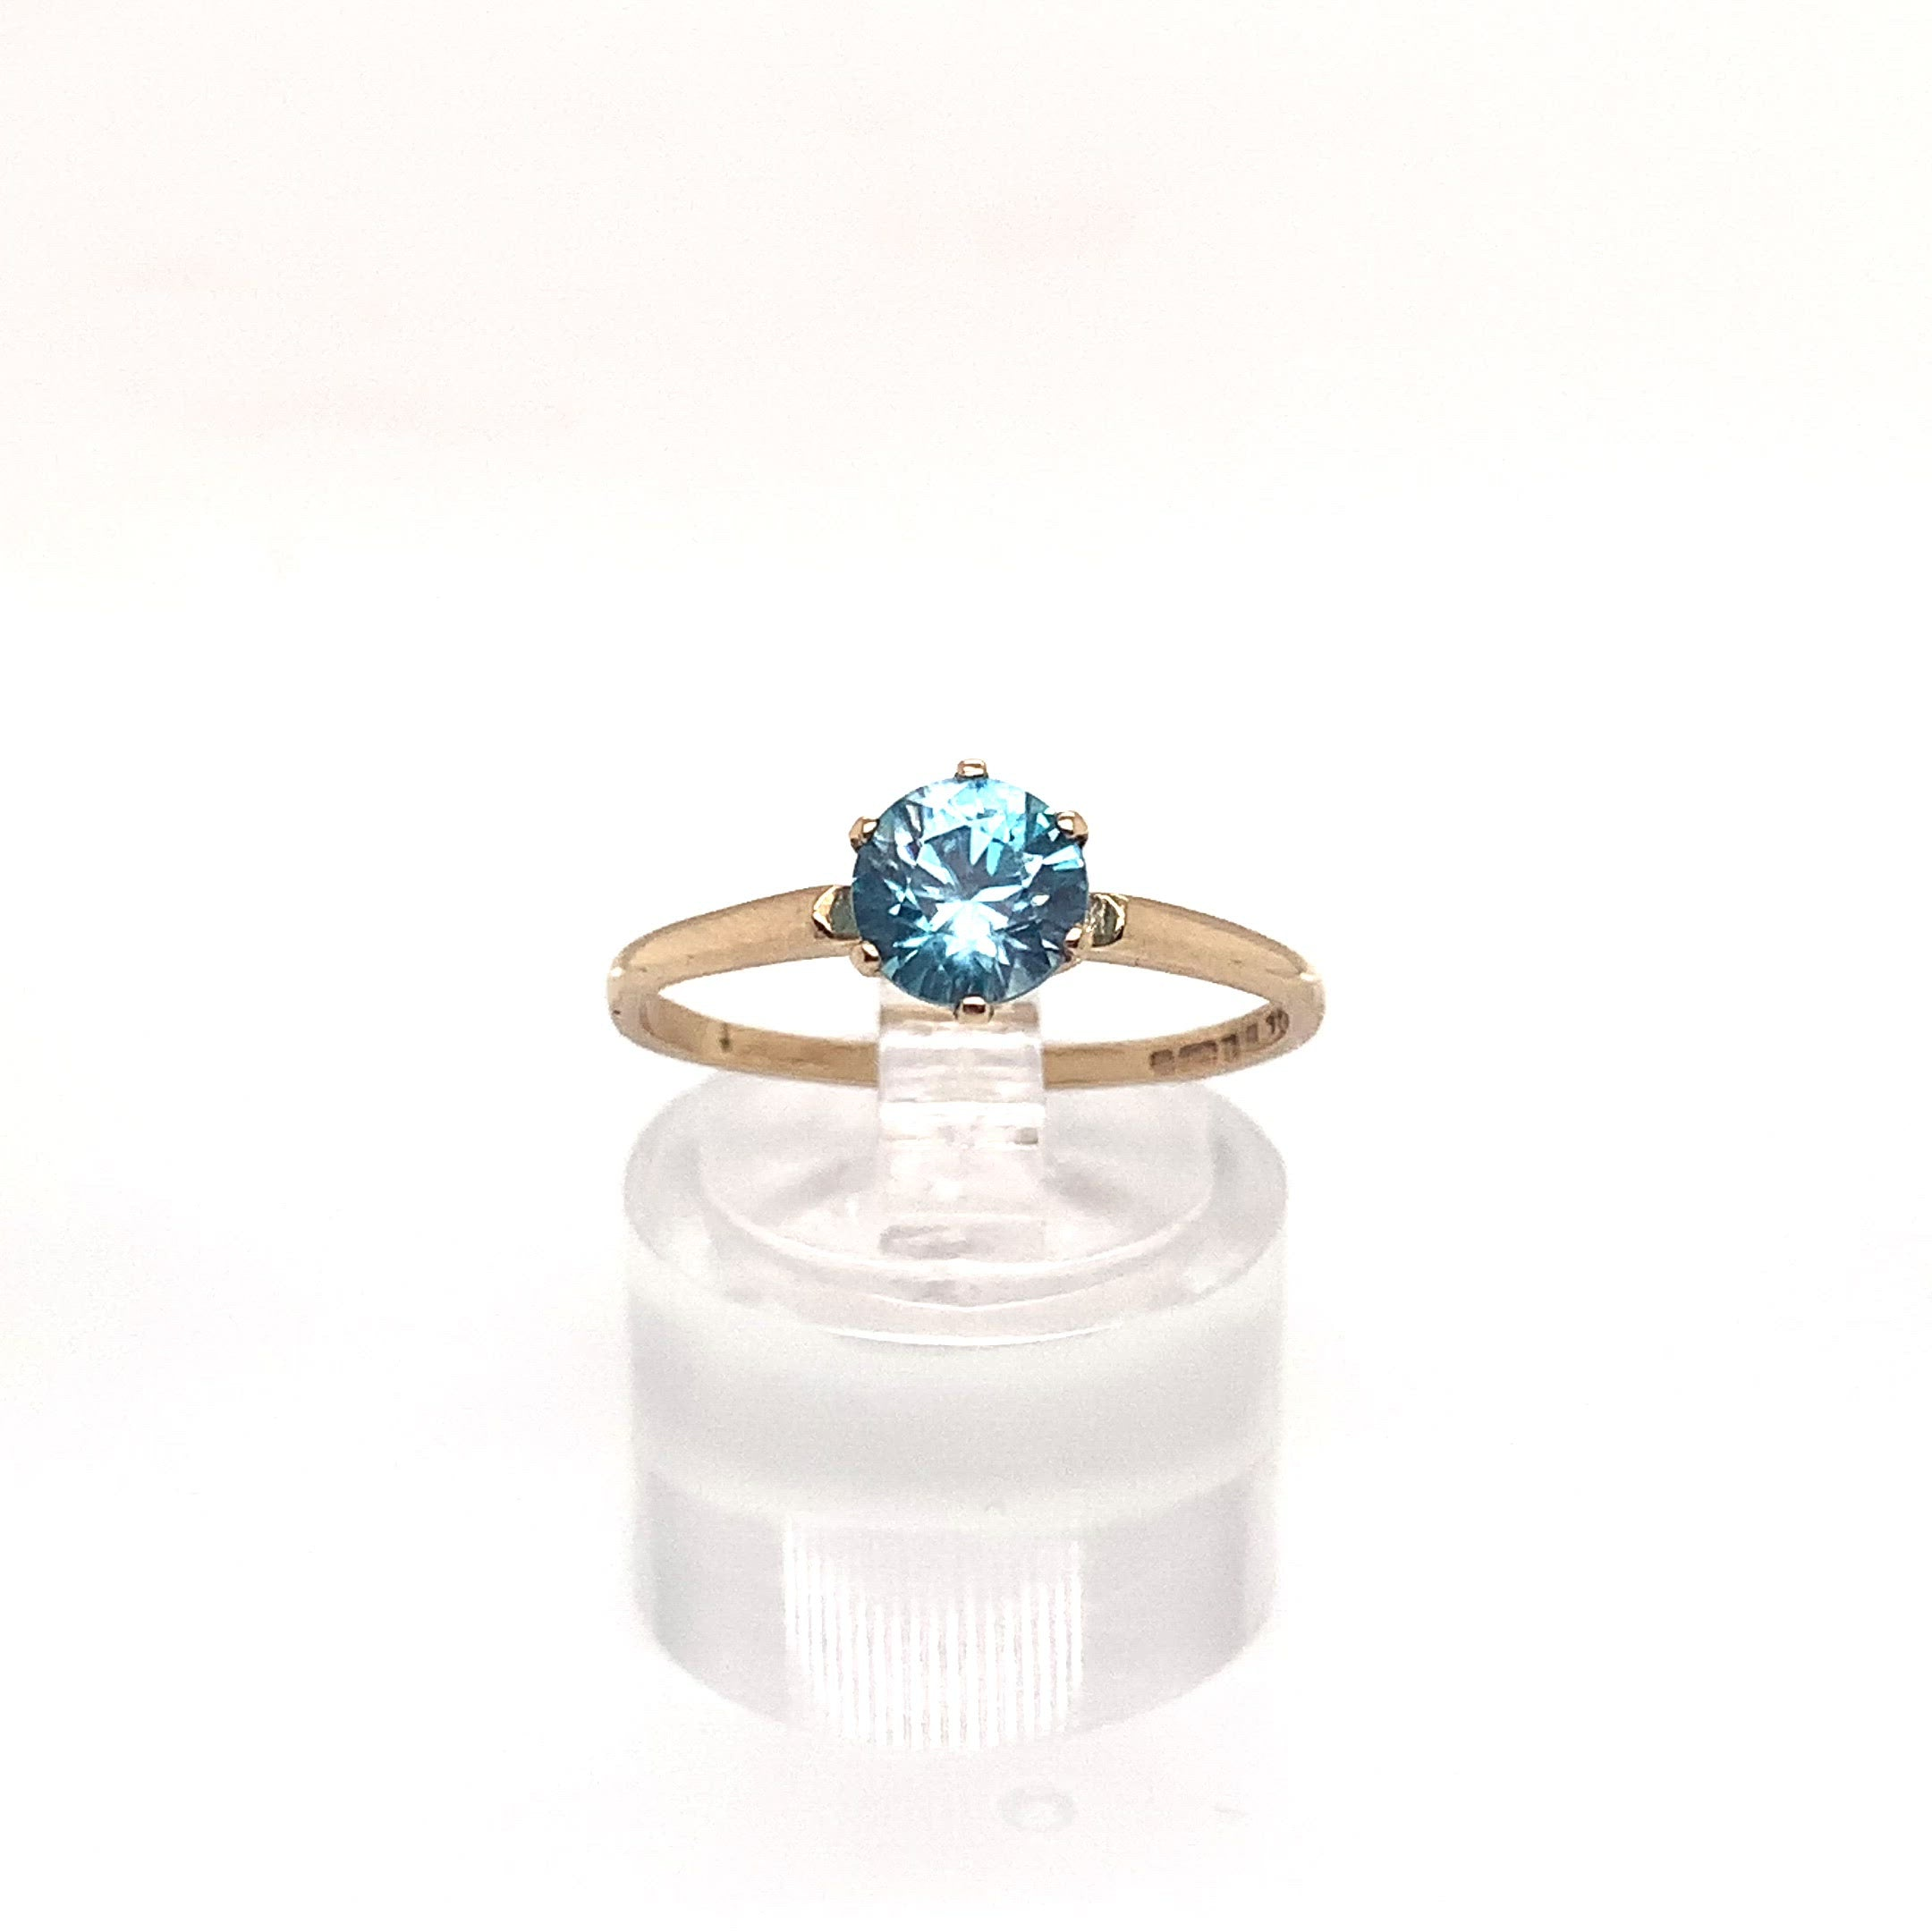 1.26ct Vivid Blue Round Cut Zircon Solitaire Ring